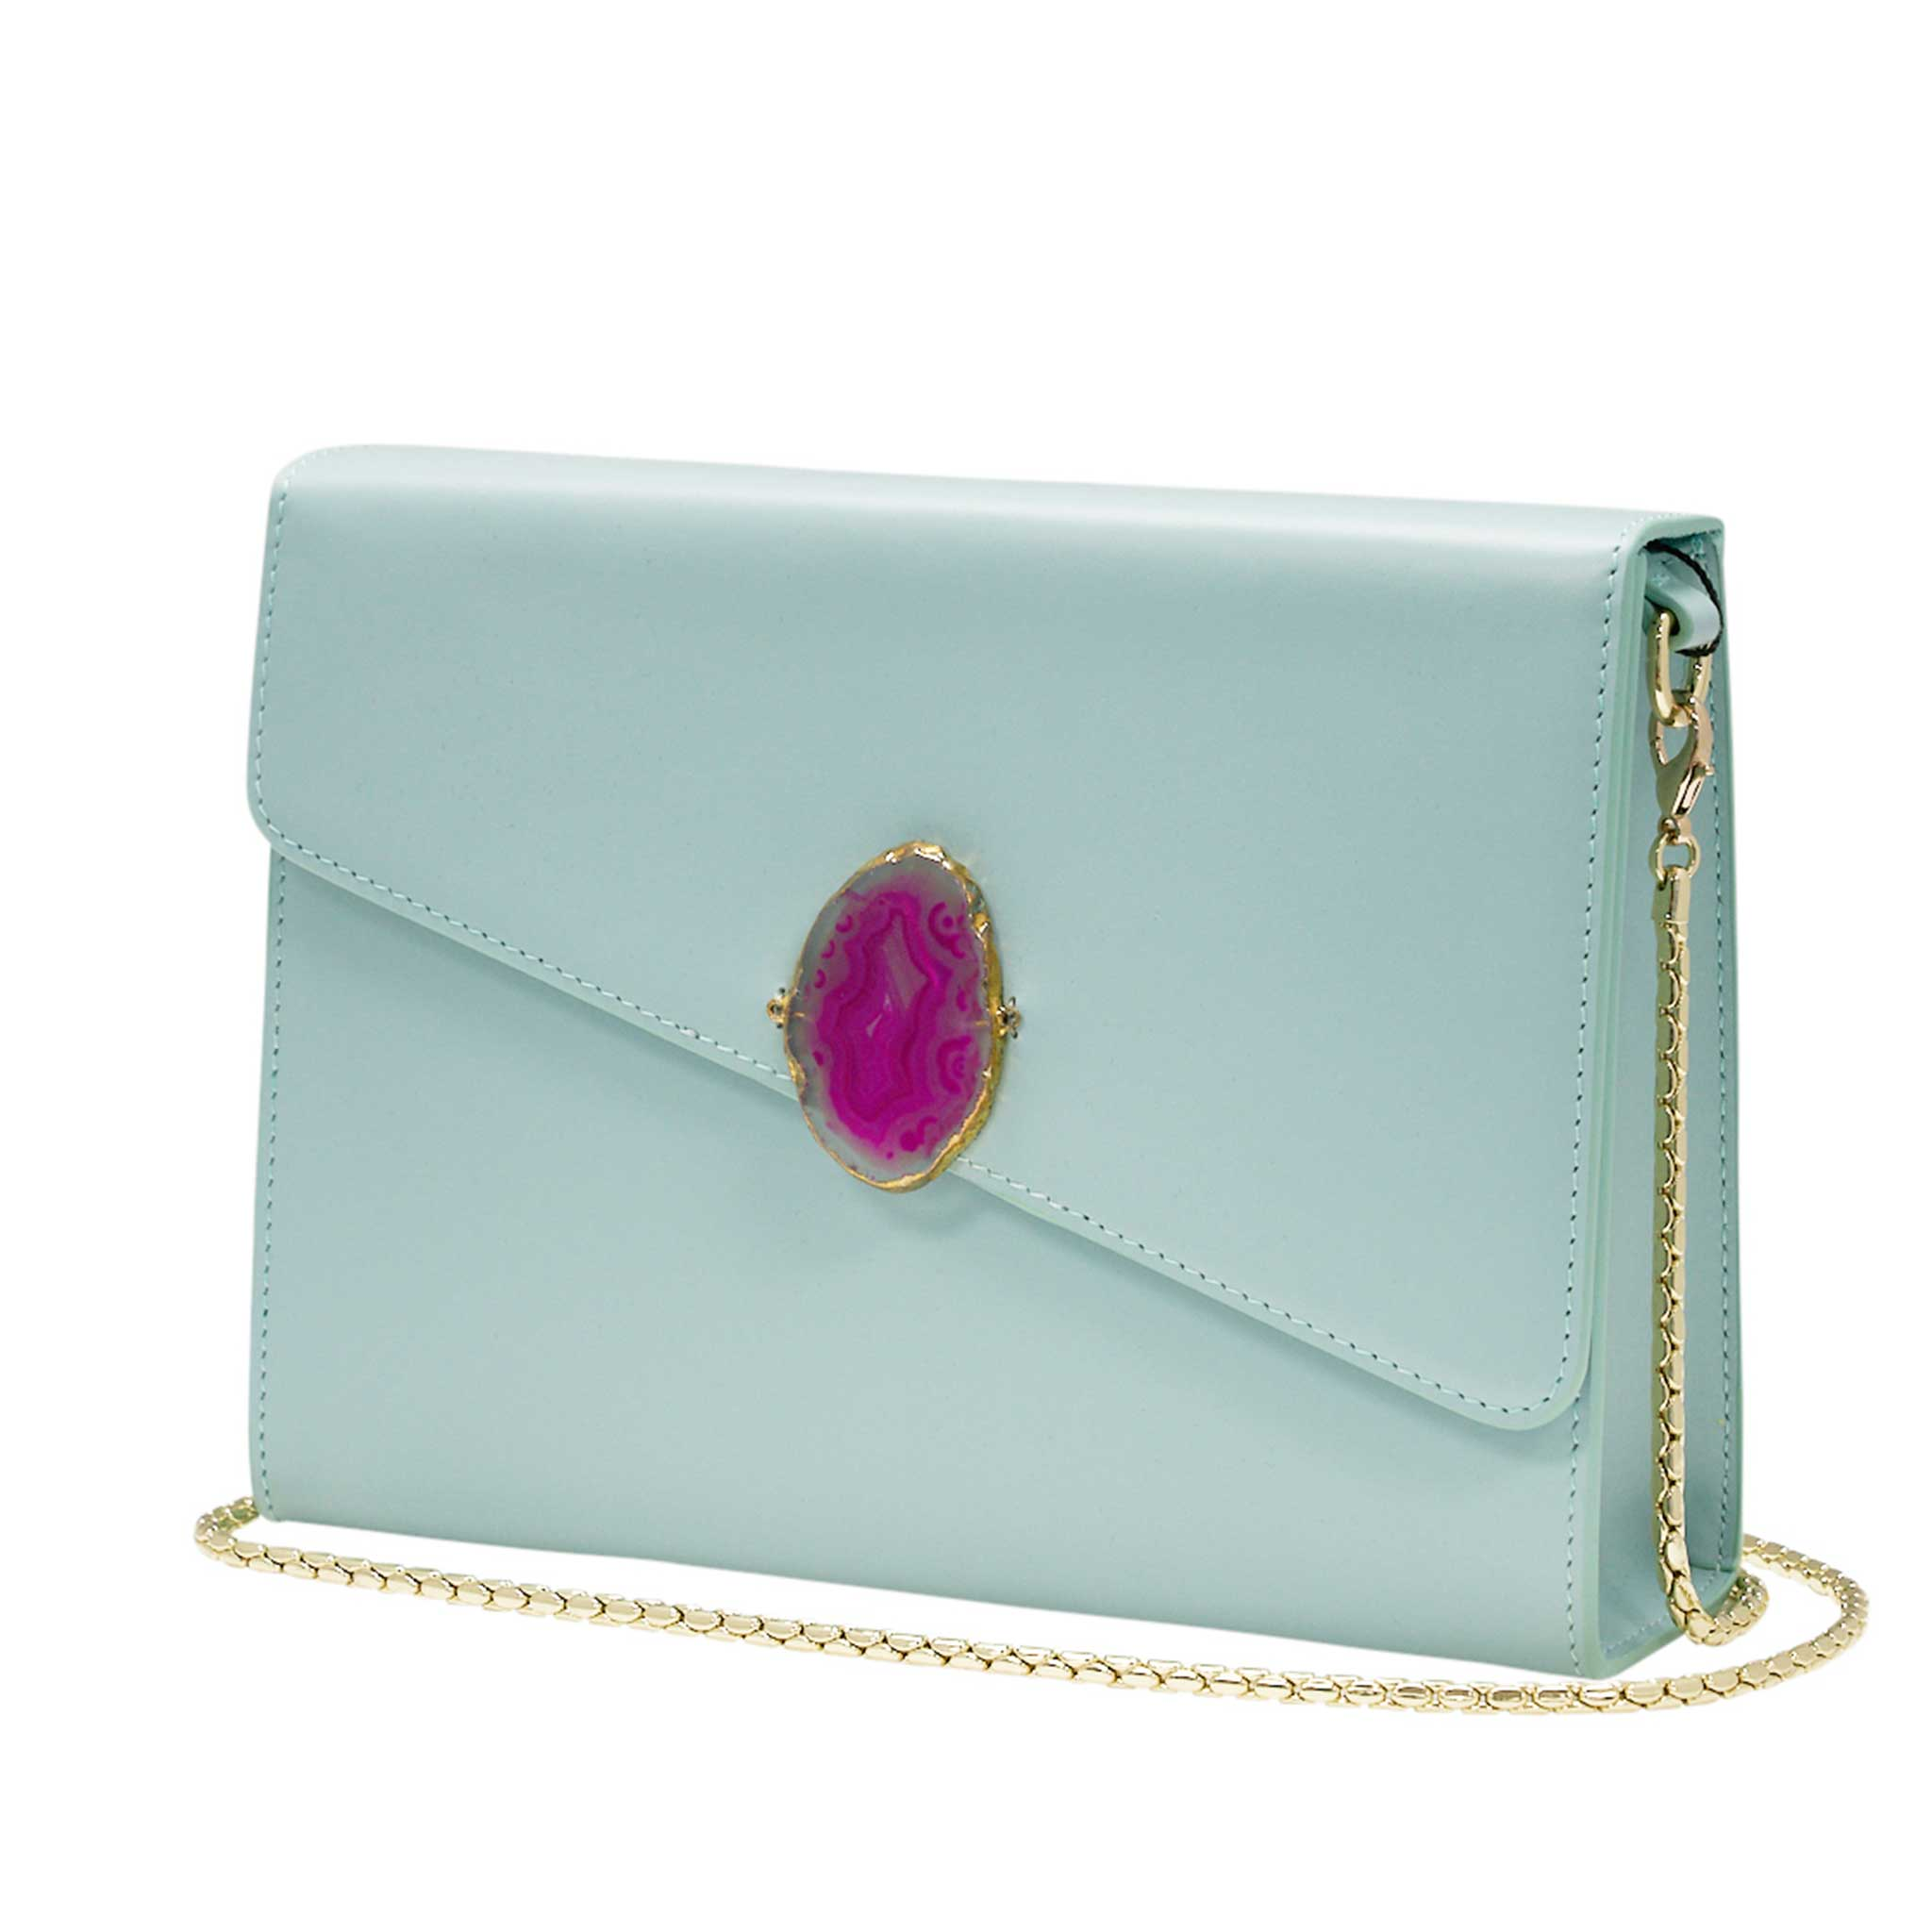 LOVED BAG - MOONSTONE WHITE LEATHER WITH PINK AGATE - 1.02.005.35